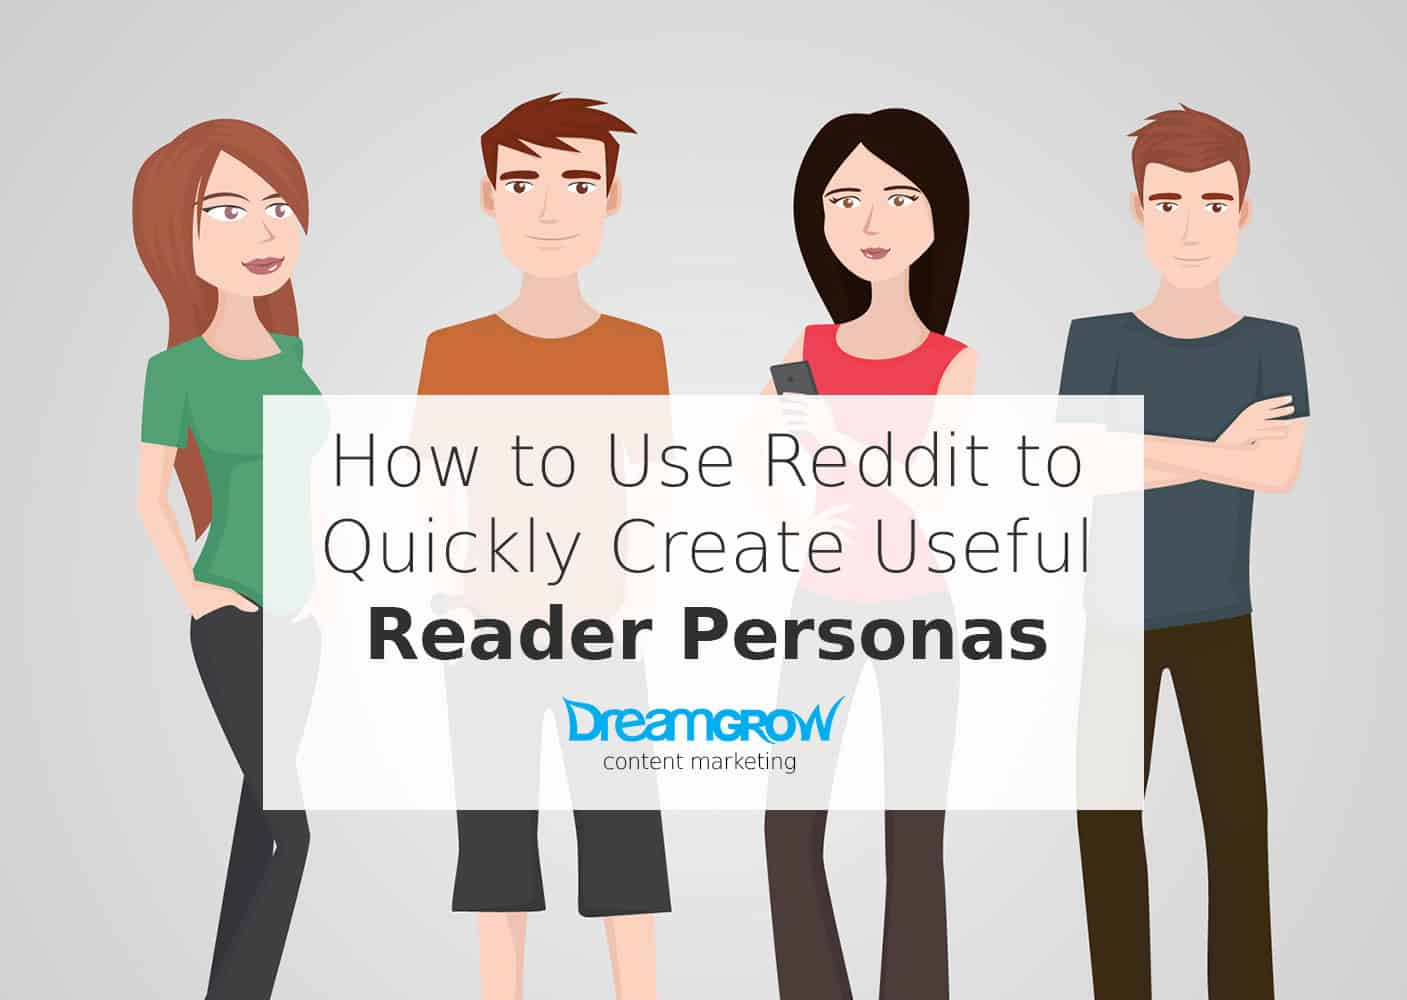 create reader personas with reddit